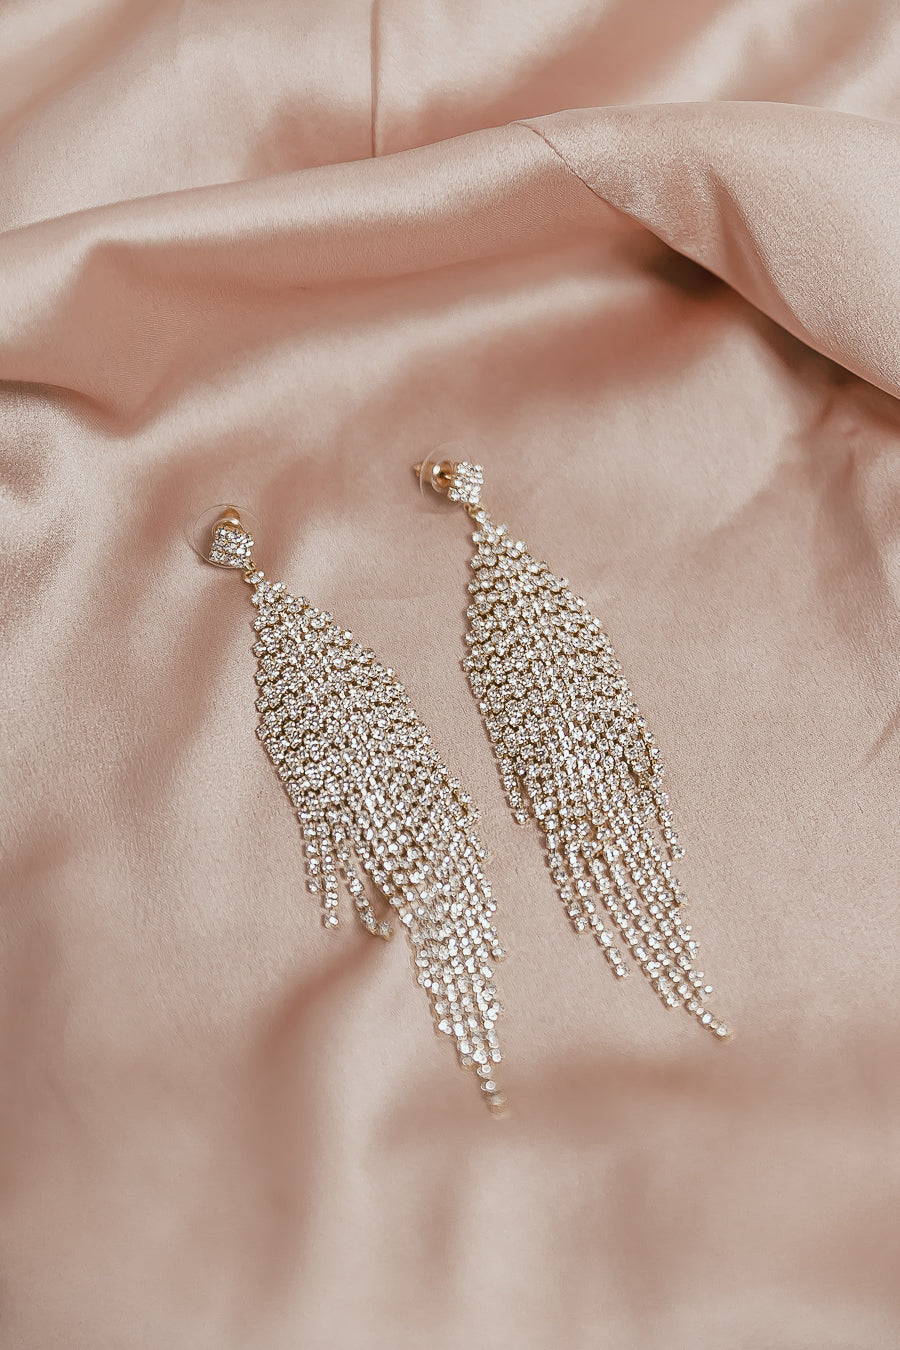 Elegant Chandelier Crystal Earrings - Gold